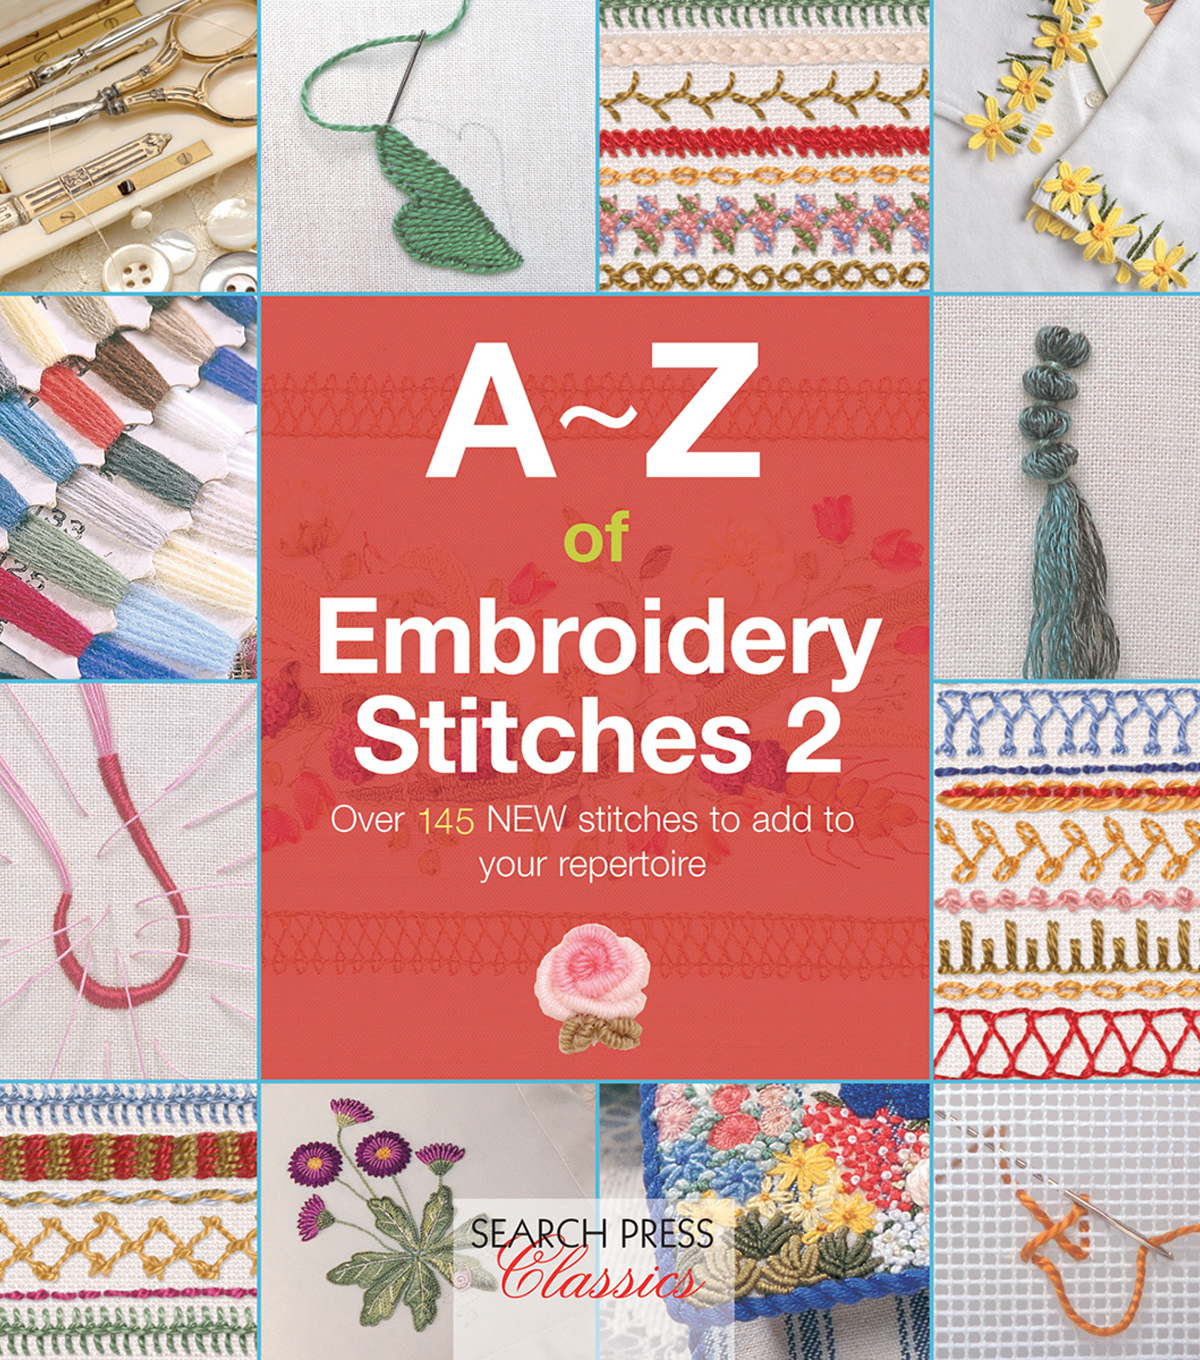 A-Z of Embroidery Stitches 2 Book